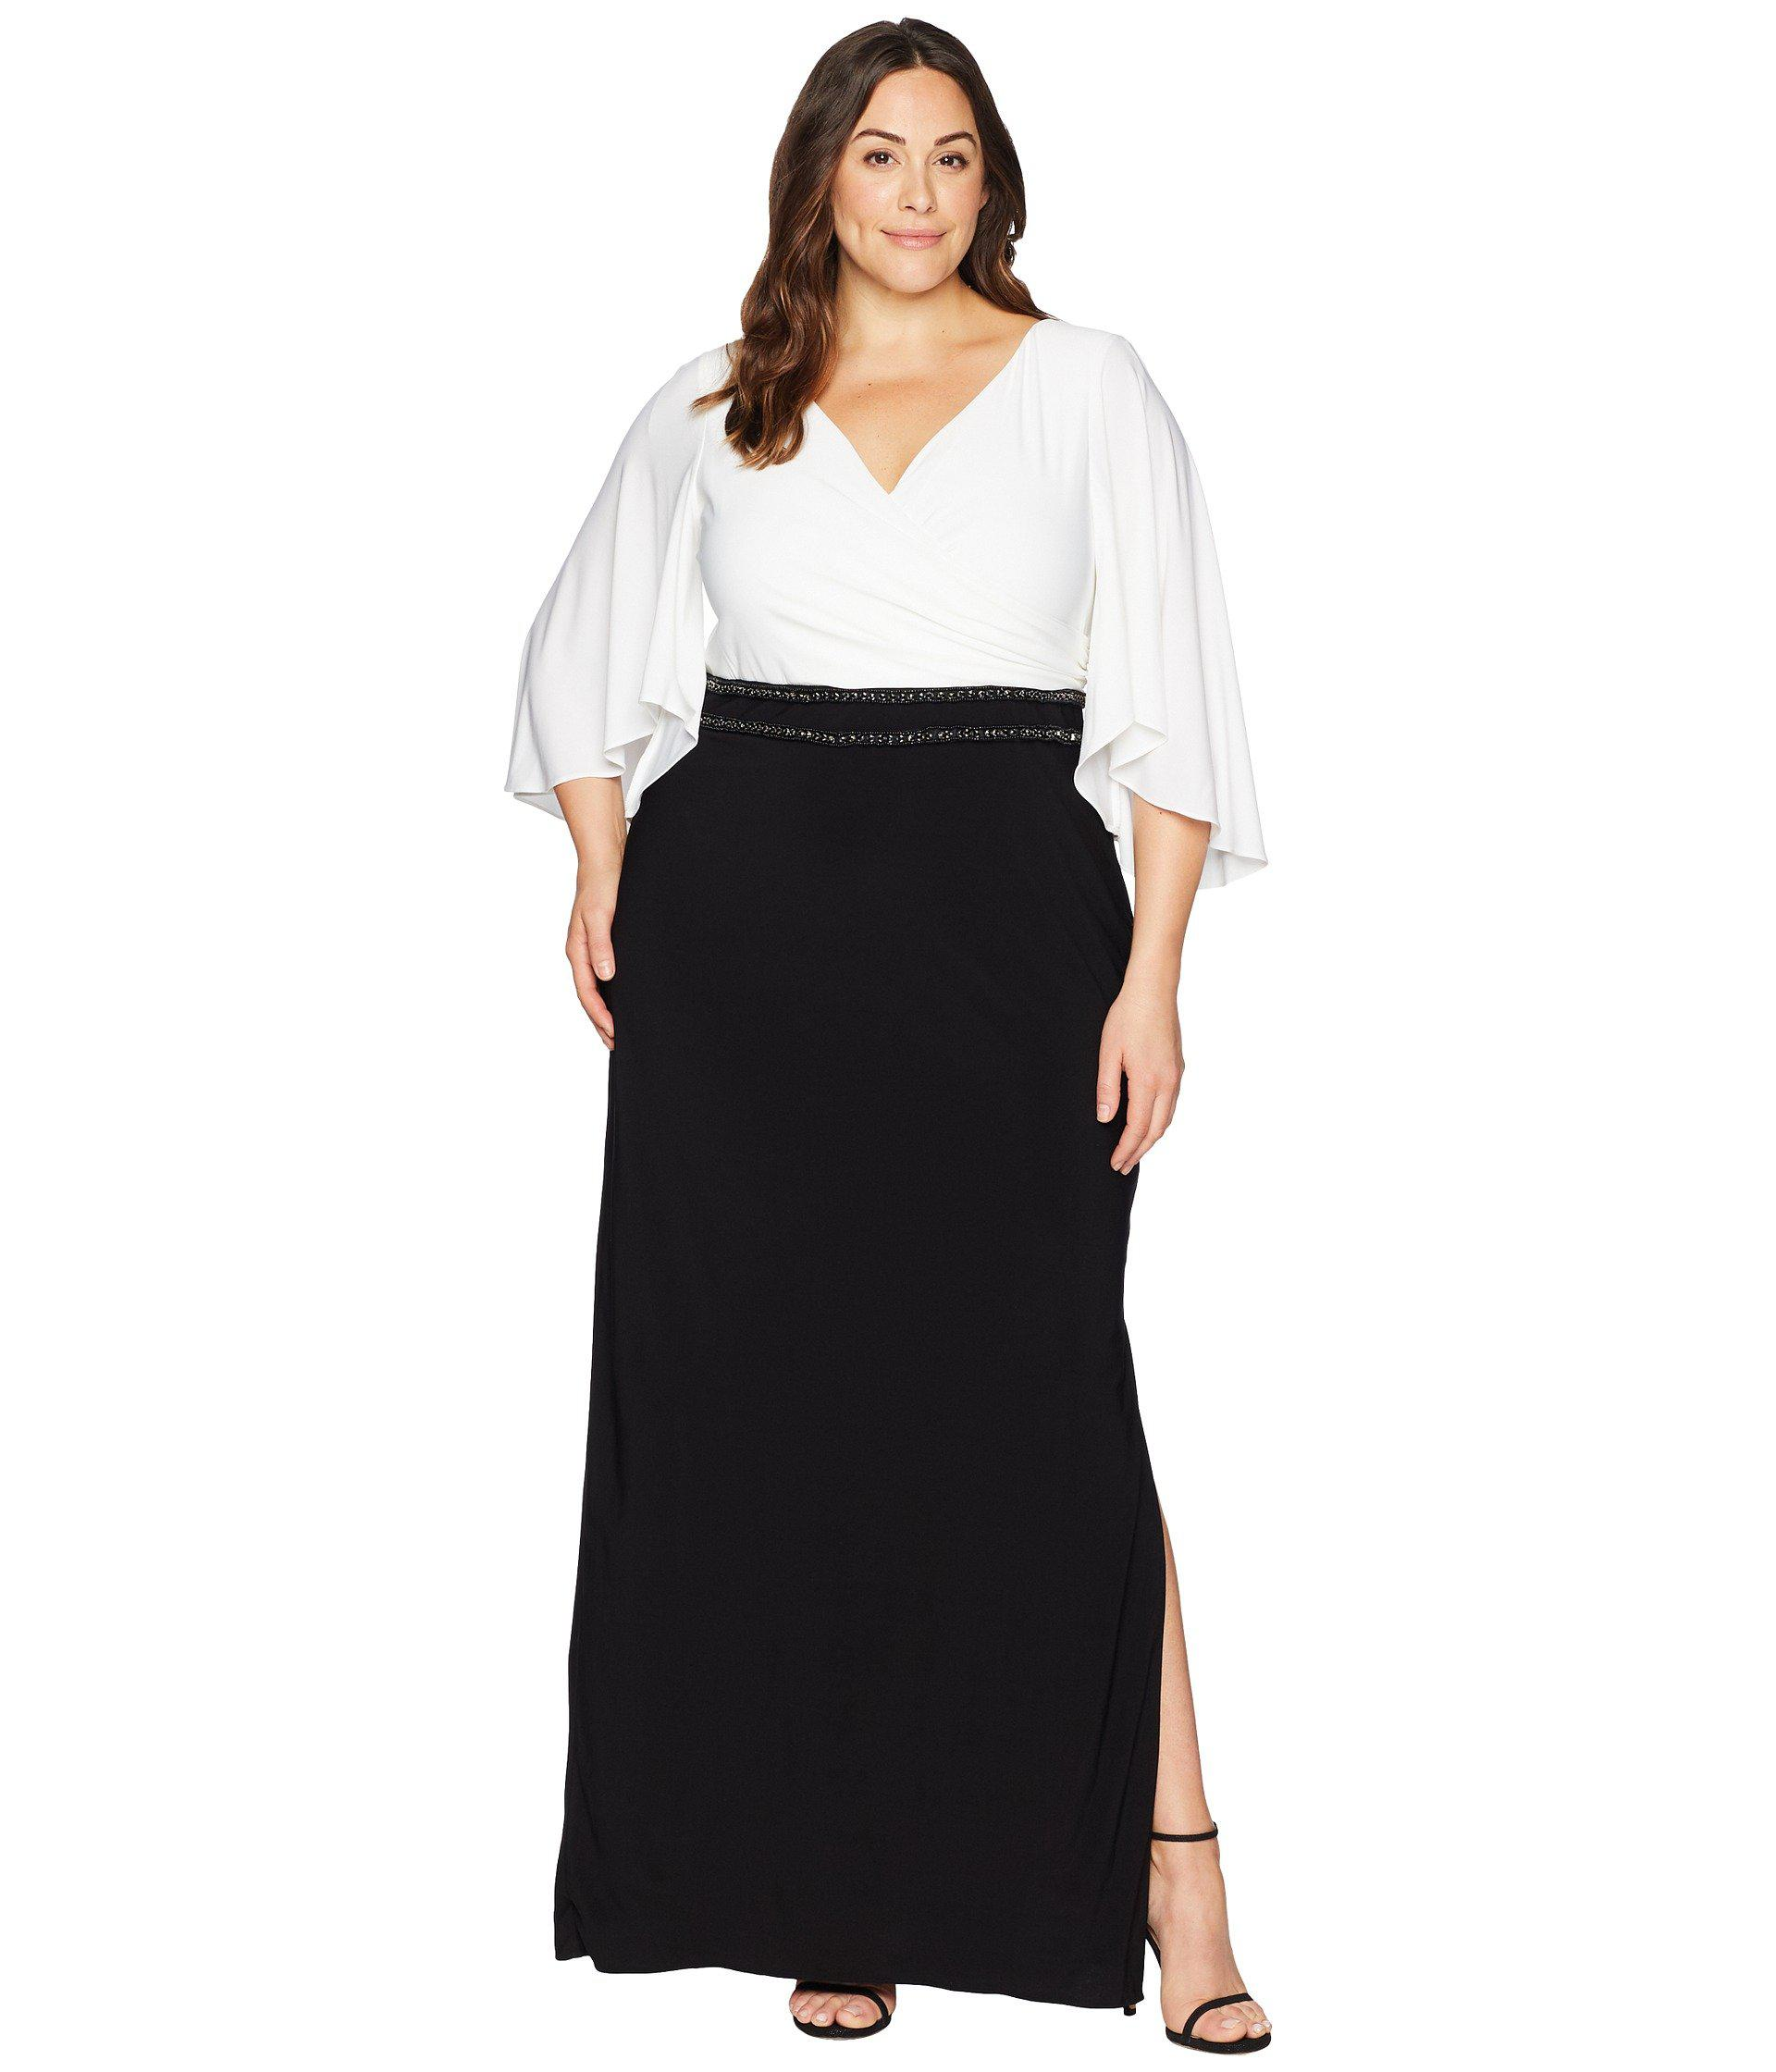 Lyst - Adrianna Papell Plus Size Elbow Sleeve V-neck Jersey Color ...